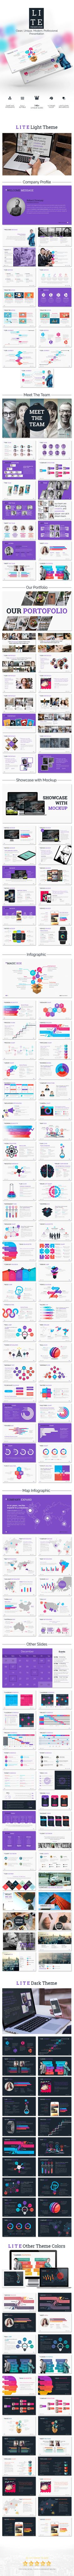 LITE Keynote - Presentation Template #design #slides Download: http://graphicriver.net/item/lite-keynote-presentation-template/14399569?ref=ksioks